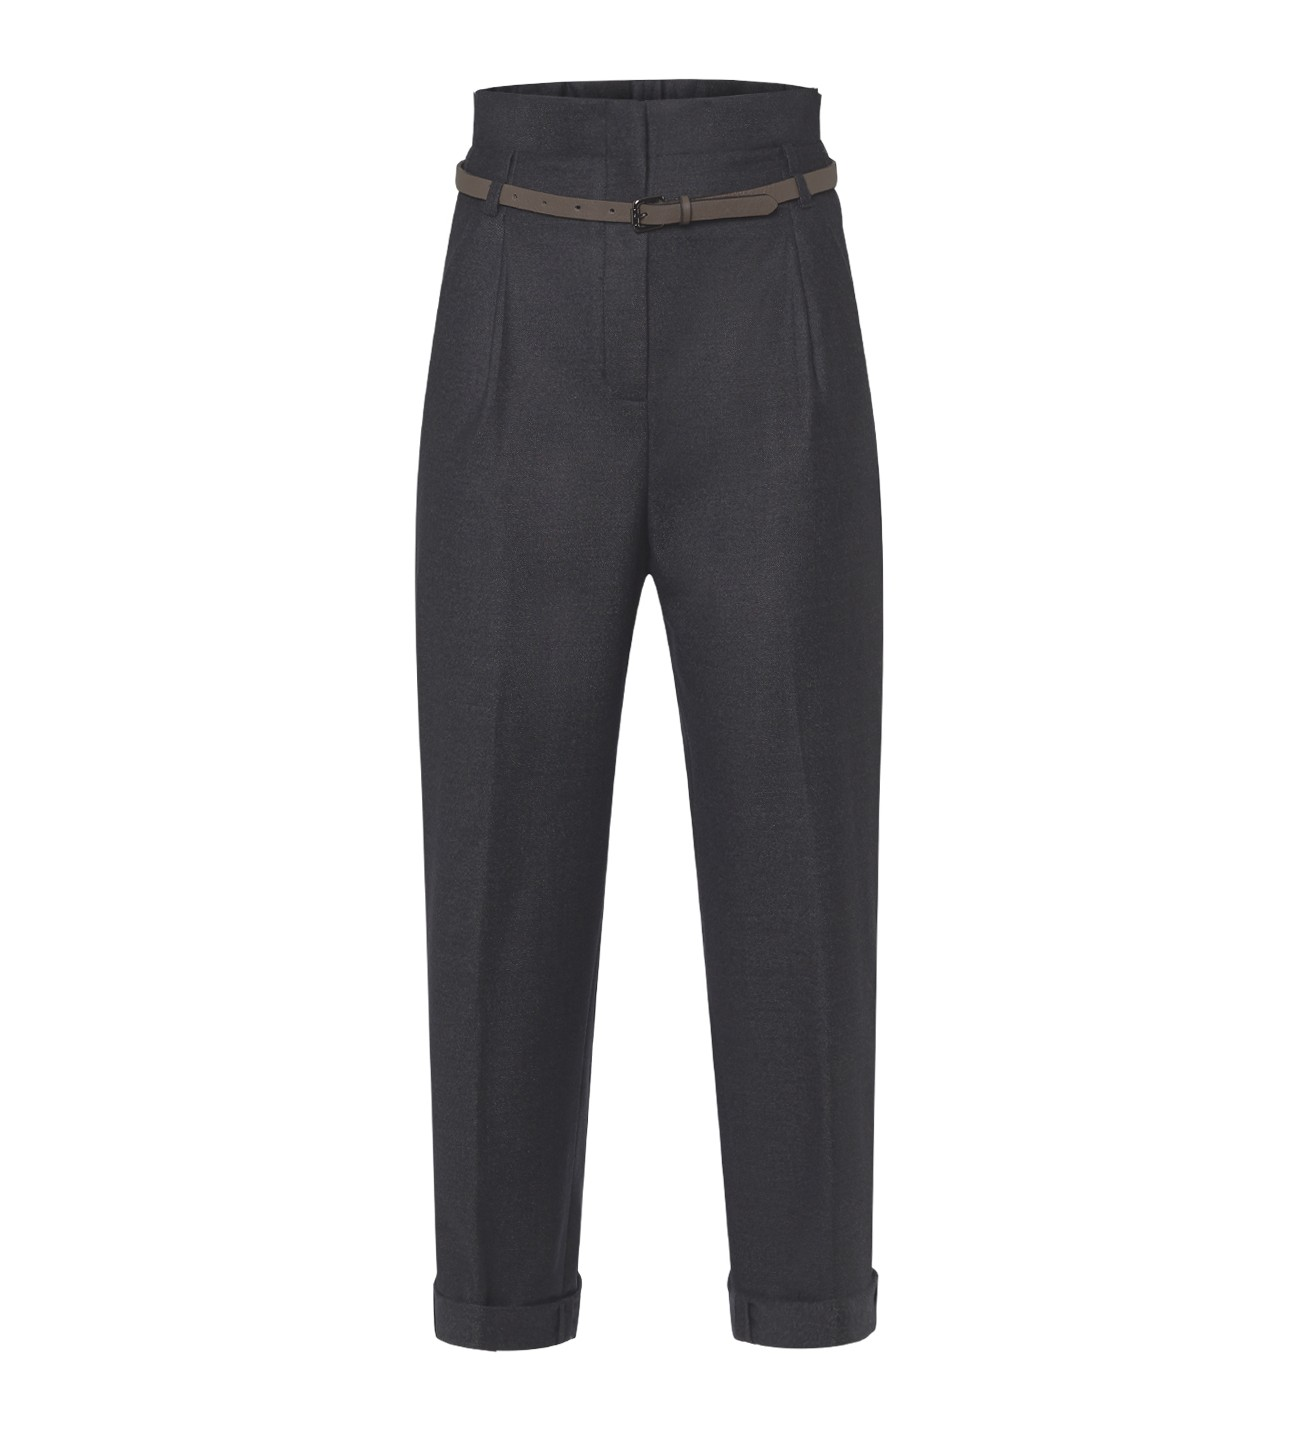 PESERICO_HIGH_WAIST_PLEATED_TROUSERS_WITH_BELT_MARIONA_FASHION_CLOTHING_WOMAN_SHOP_ONLINE_P04550H00A